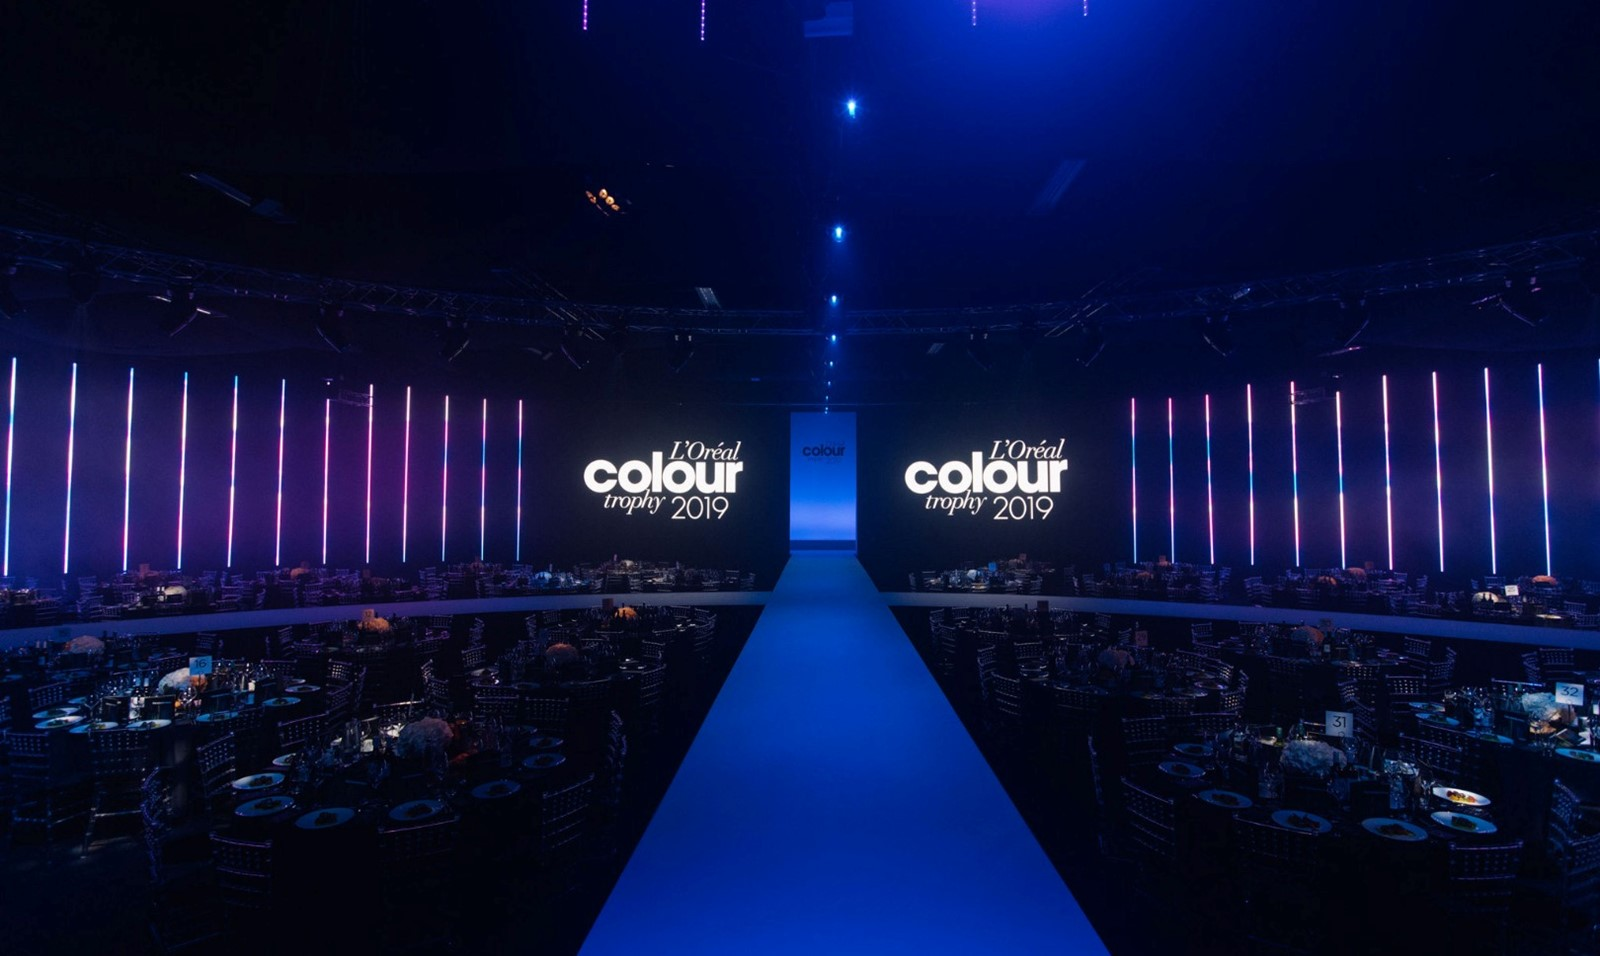 L'Oreal colour trophy awards 2019 Battersea Evolution)